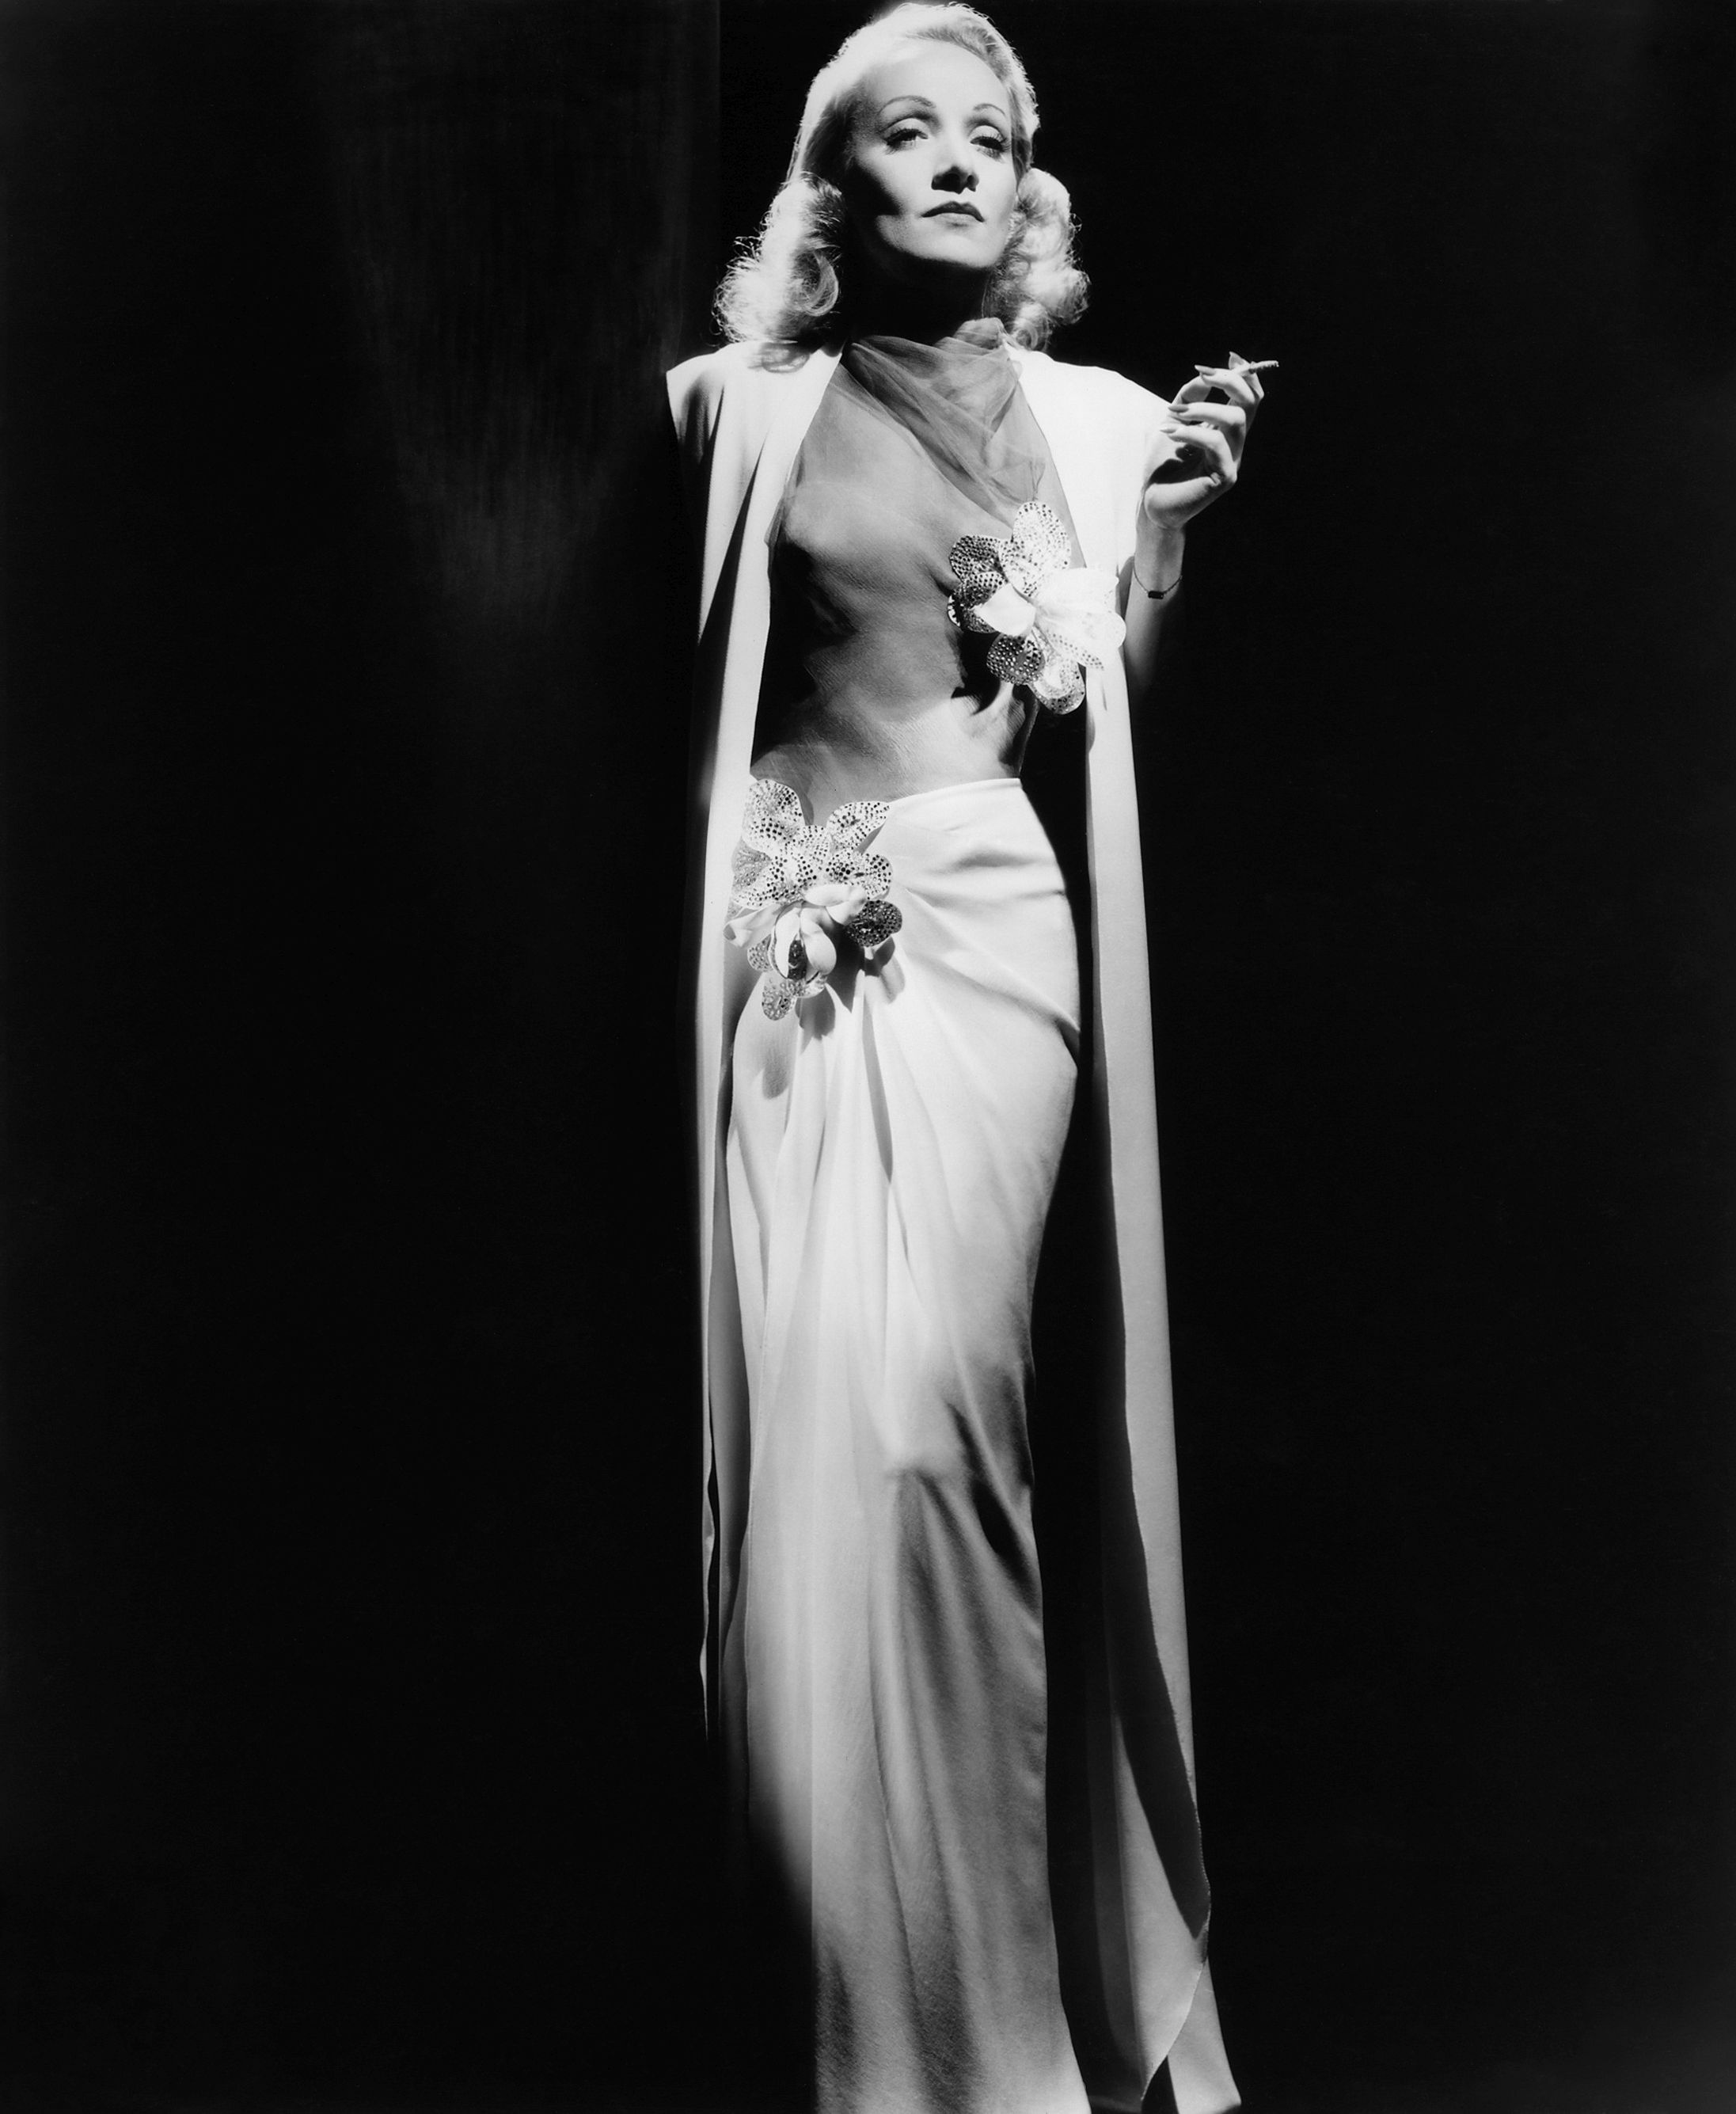 Marlene Dietrich in the movies